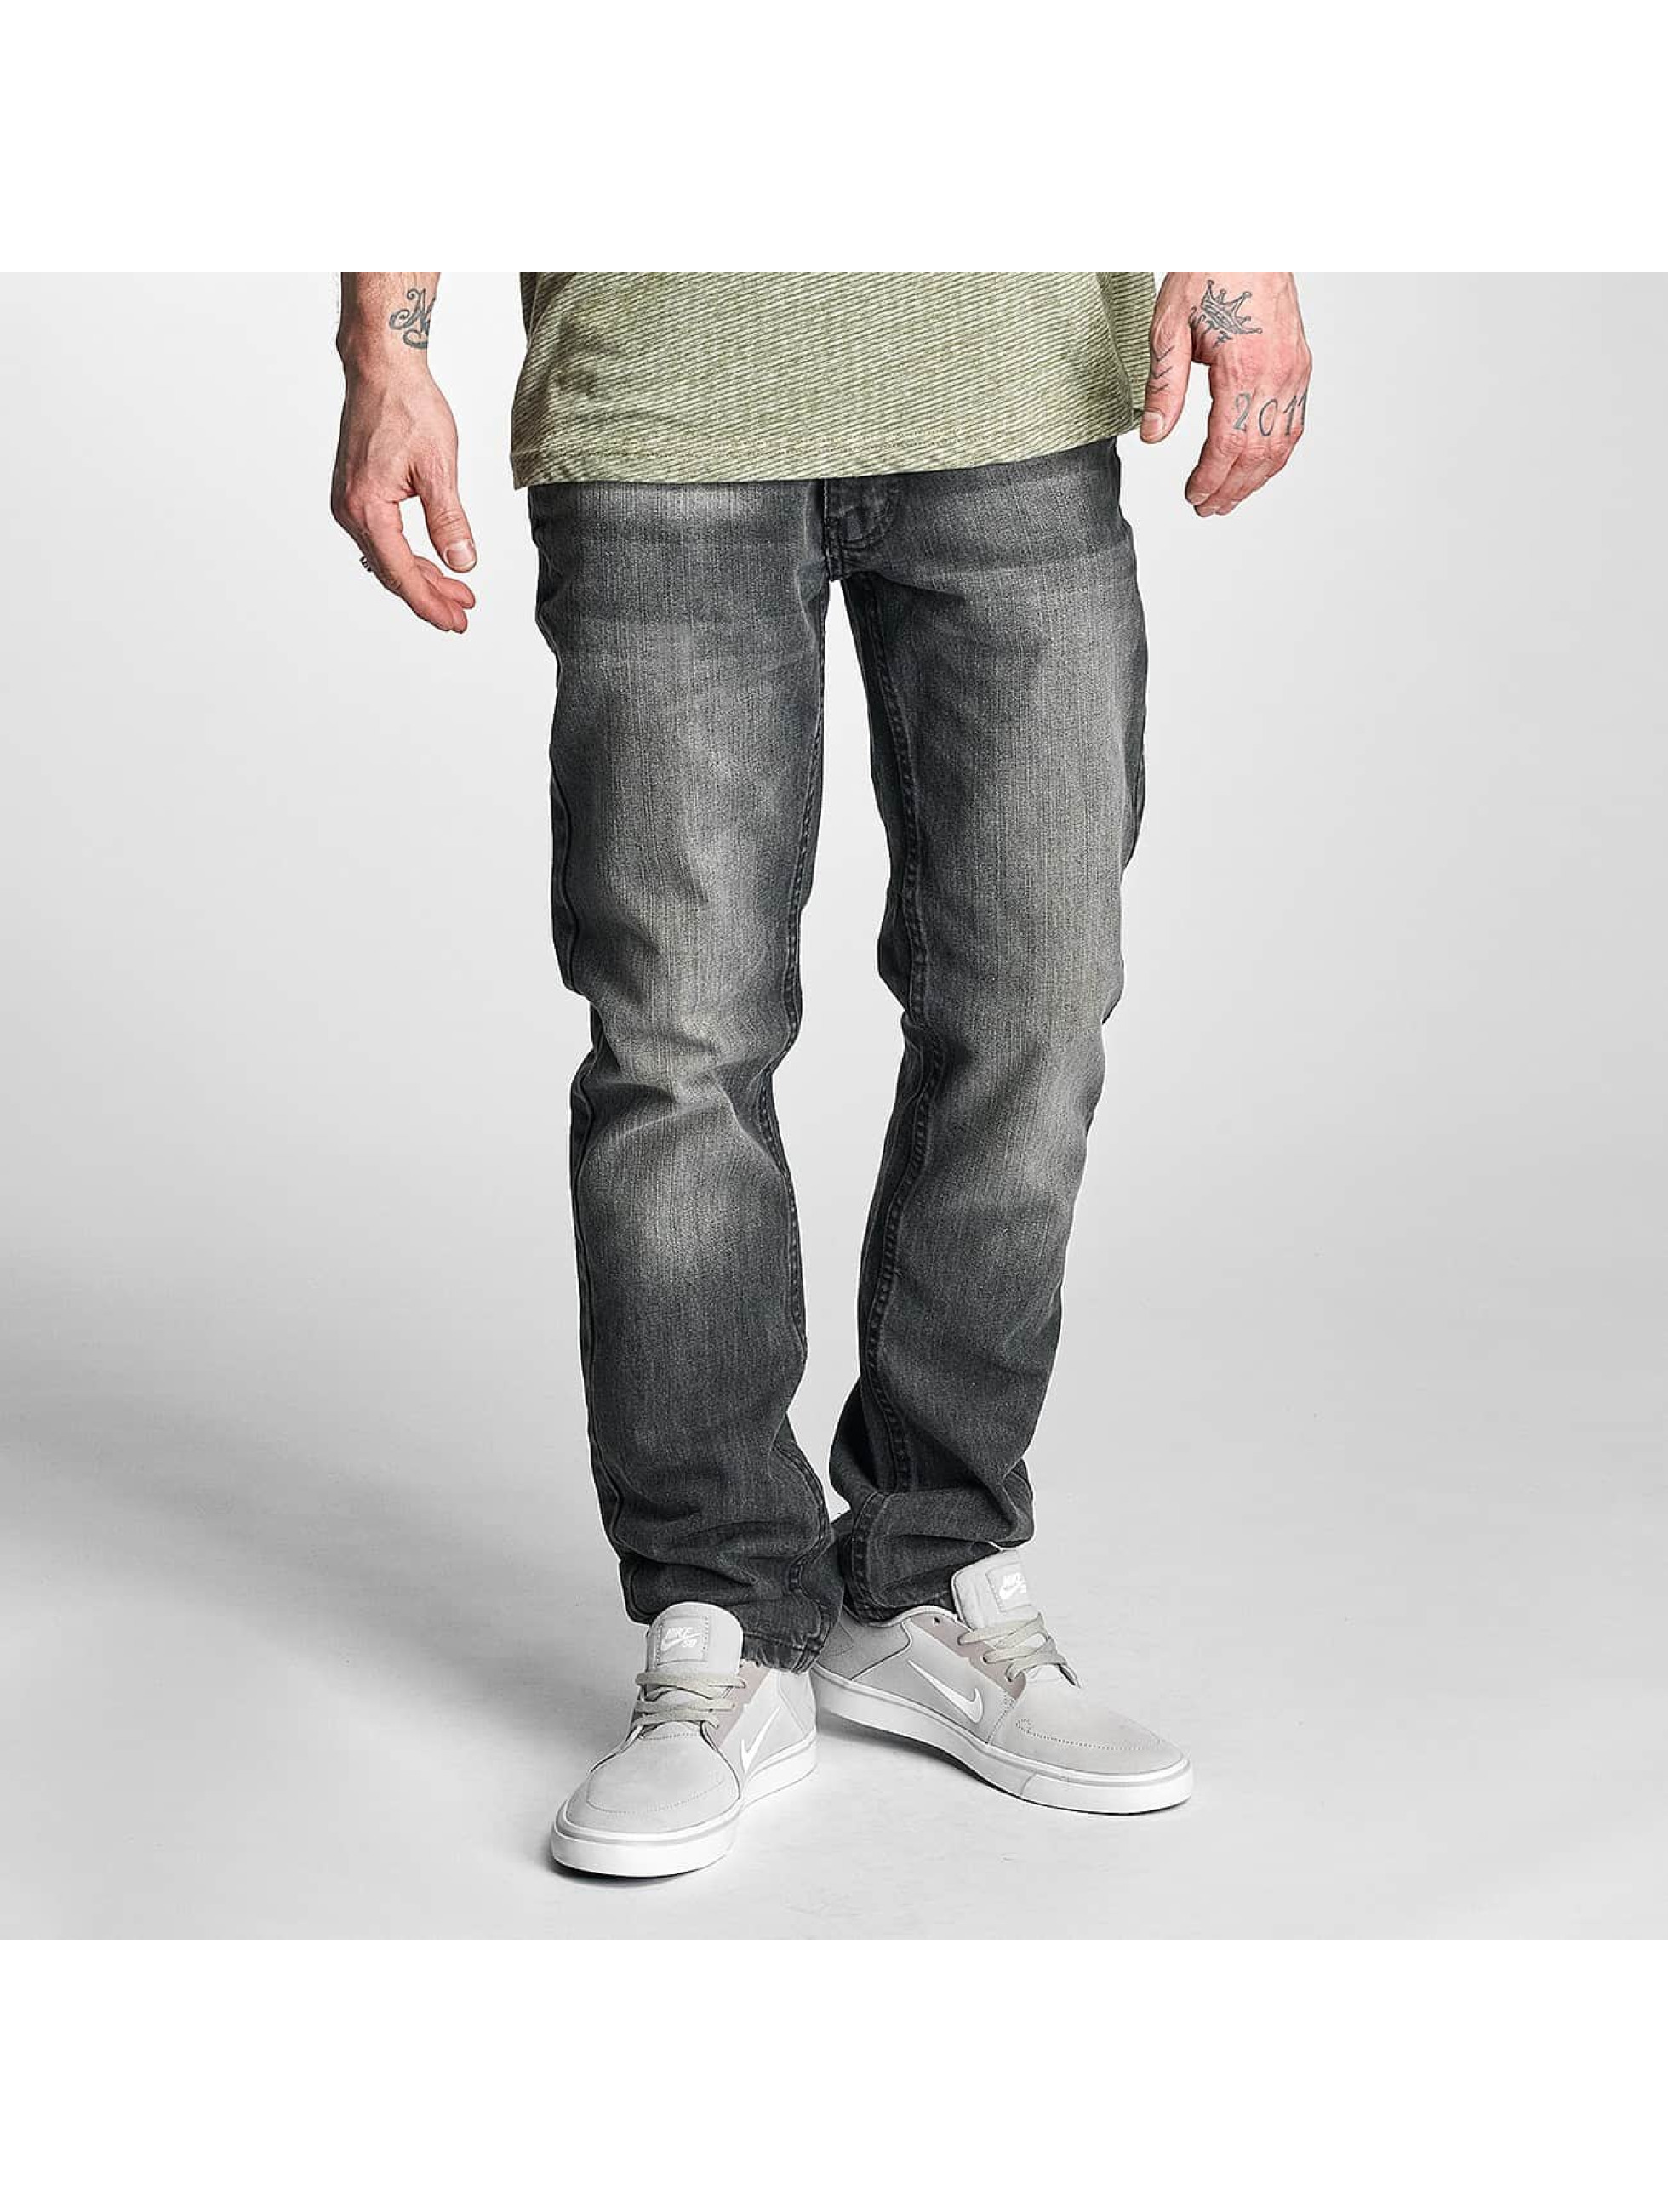 Rocawear Männer Straight Fit Jeans Relaxed in grau